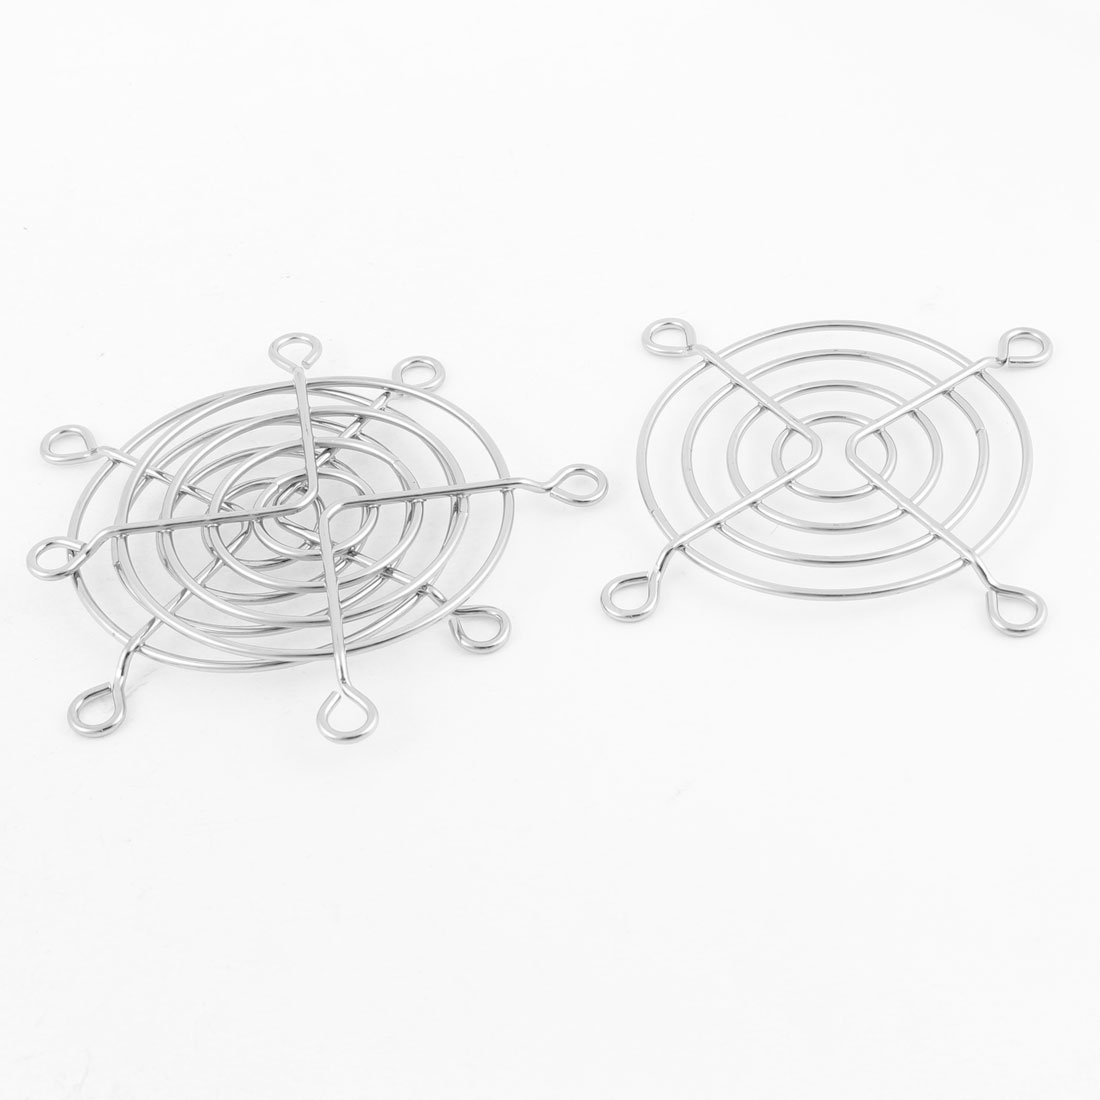 3 Pcs Axial Cooling Fan Finger Guard Grill Metal Wire 60mm AC DC Computer CPU